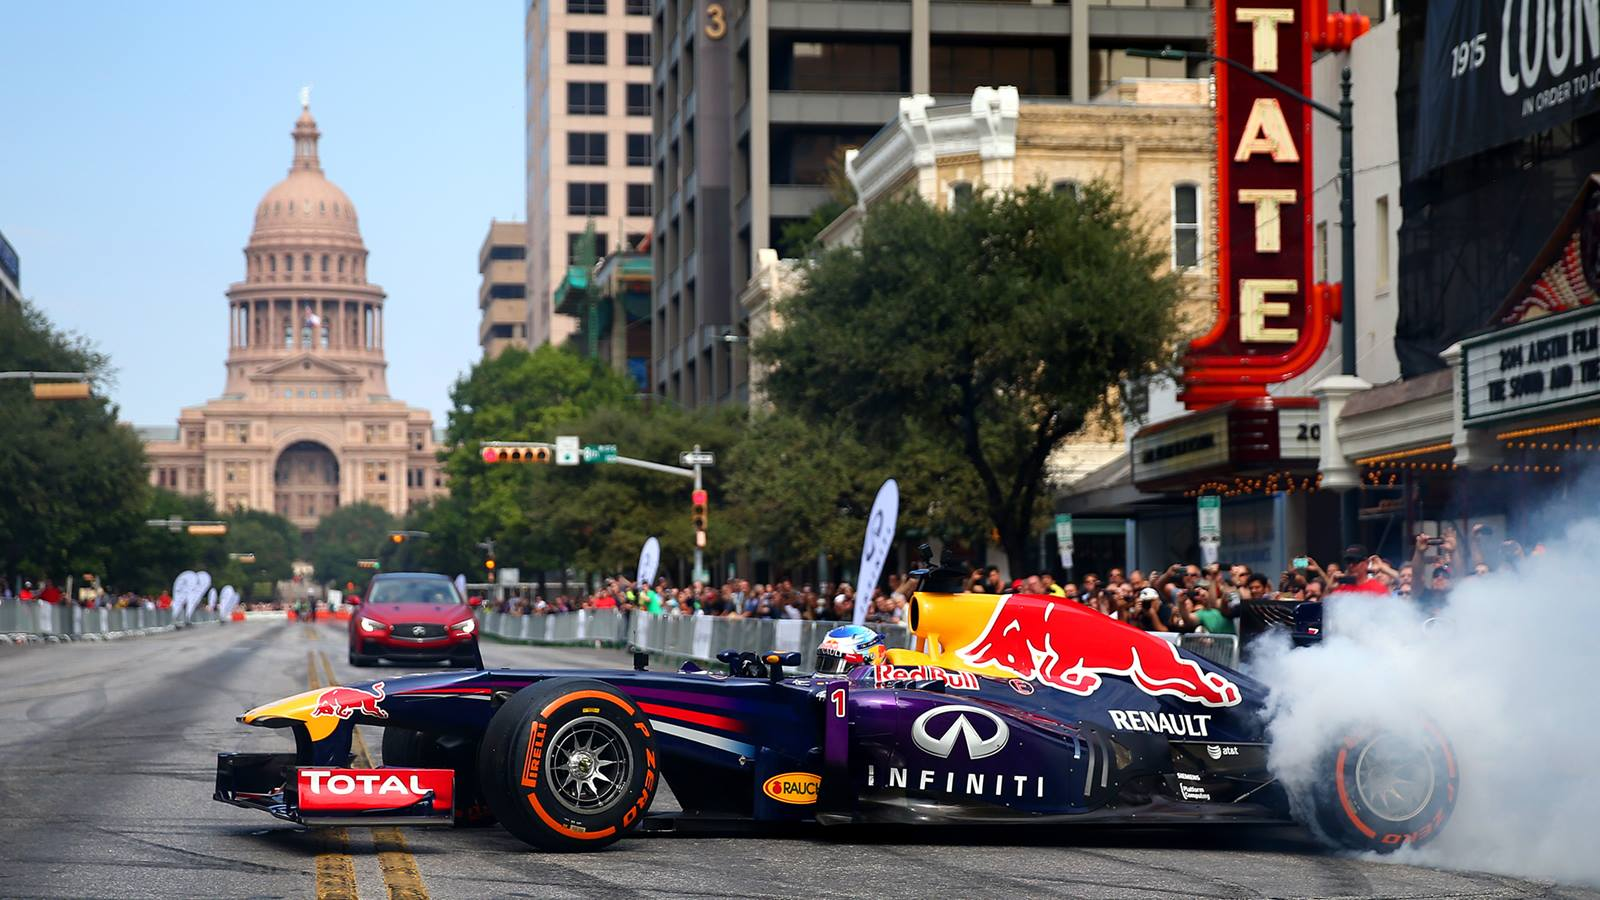 infiniti red bull racing takes f1 action to austin streets gtspirit. Black Bedroom Furniture Sets. Home Design Ideas